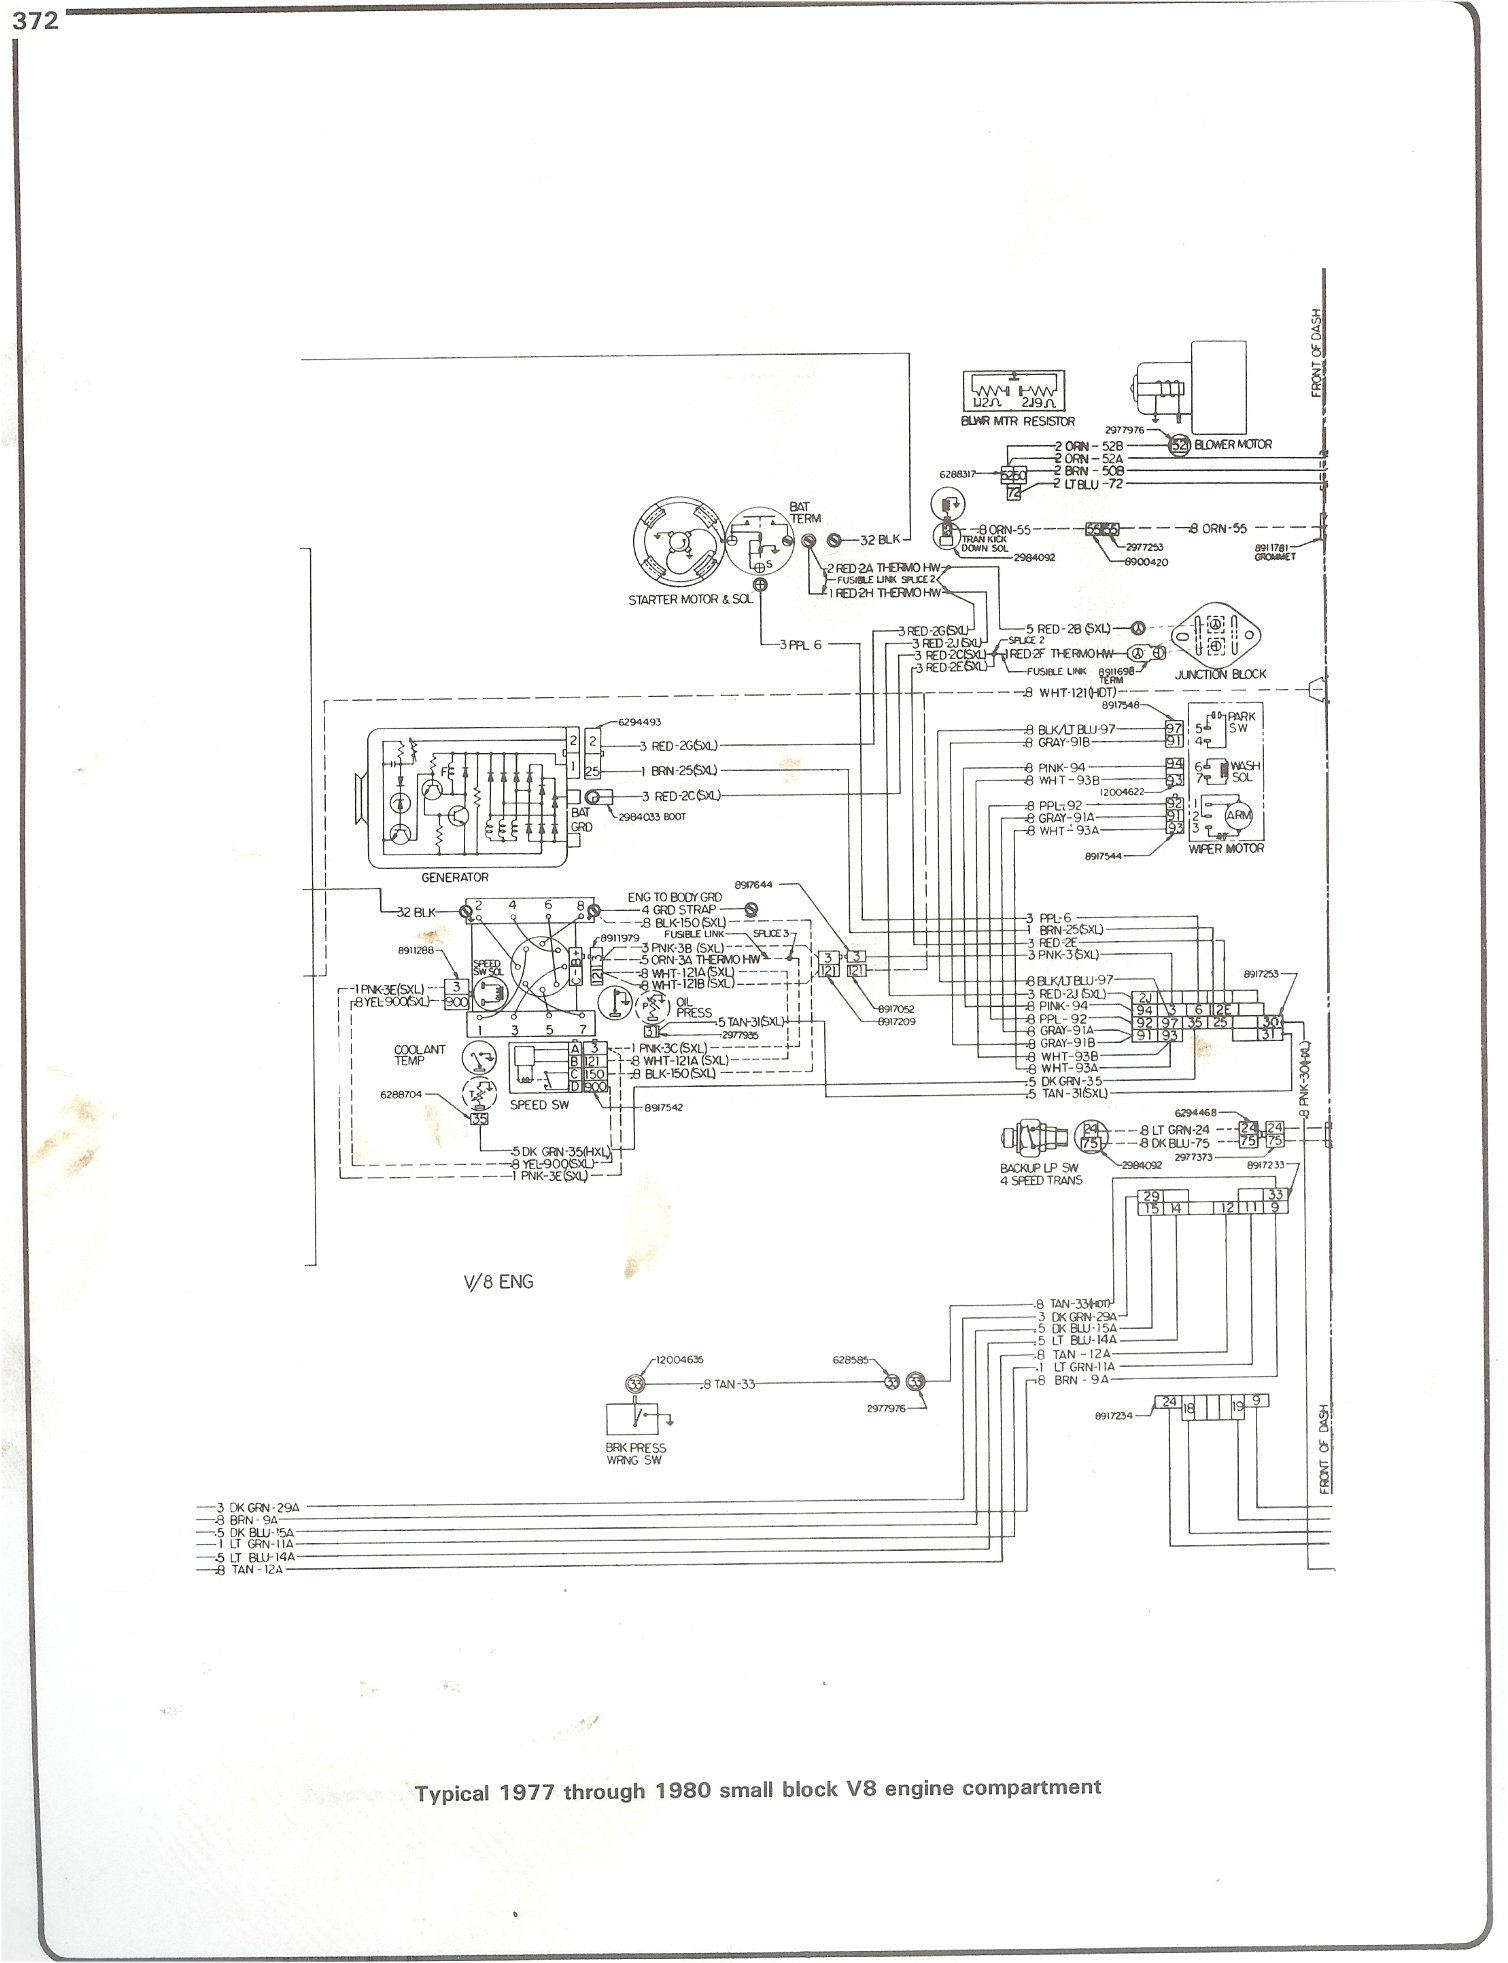 hight resolution of 1973 c65 wiring diagram wiring diagram73 chevy c65 truck wiring diagram wiring diagram datatesting an a c